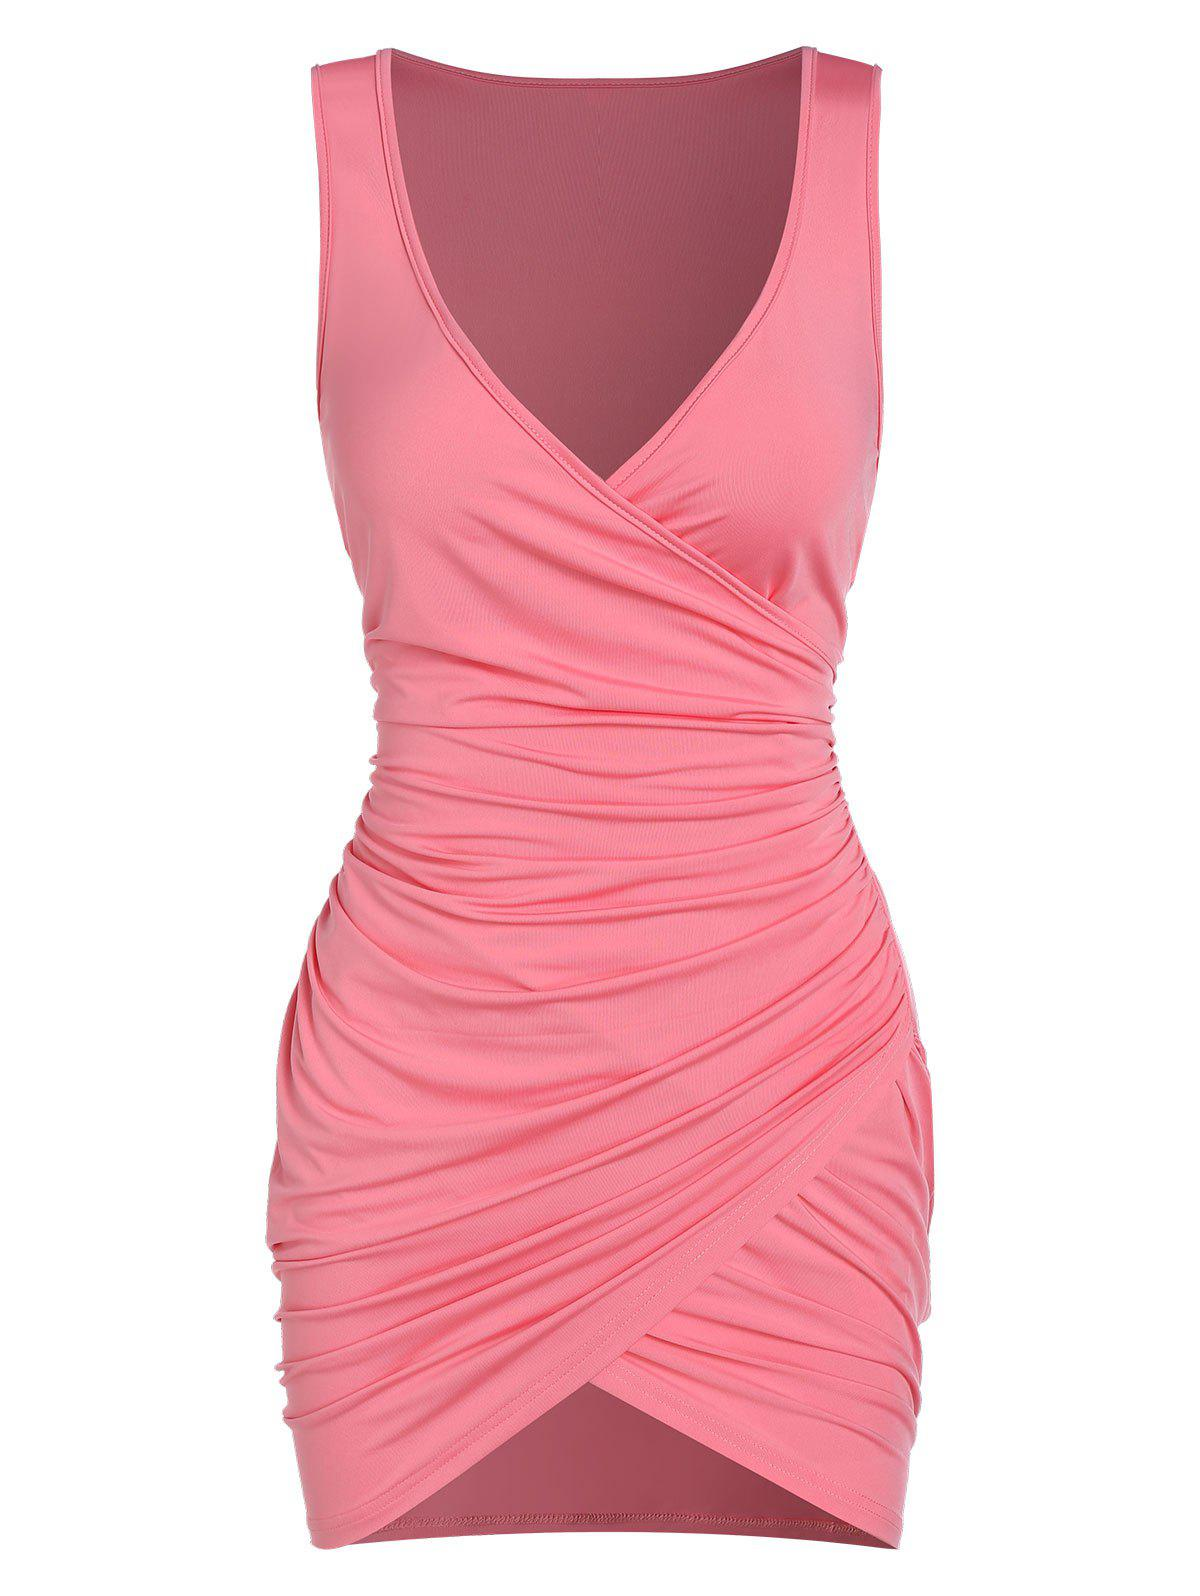 Sleeveless Ruched Surplice Sheath Dress - PINK M